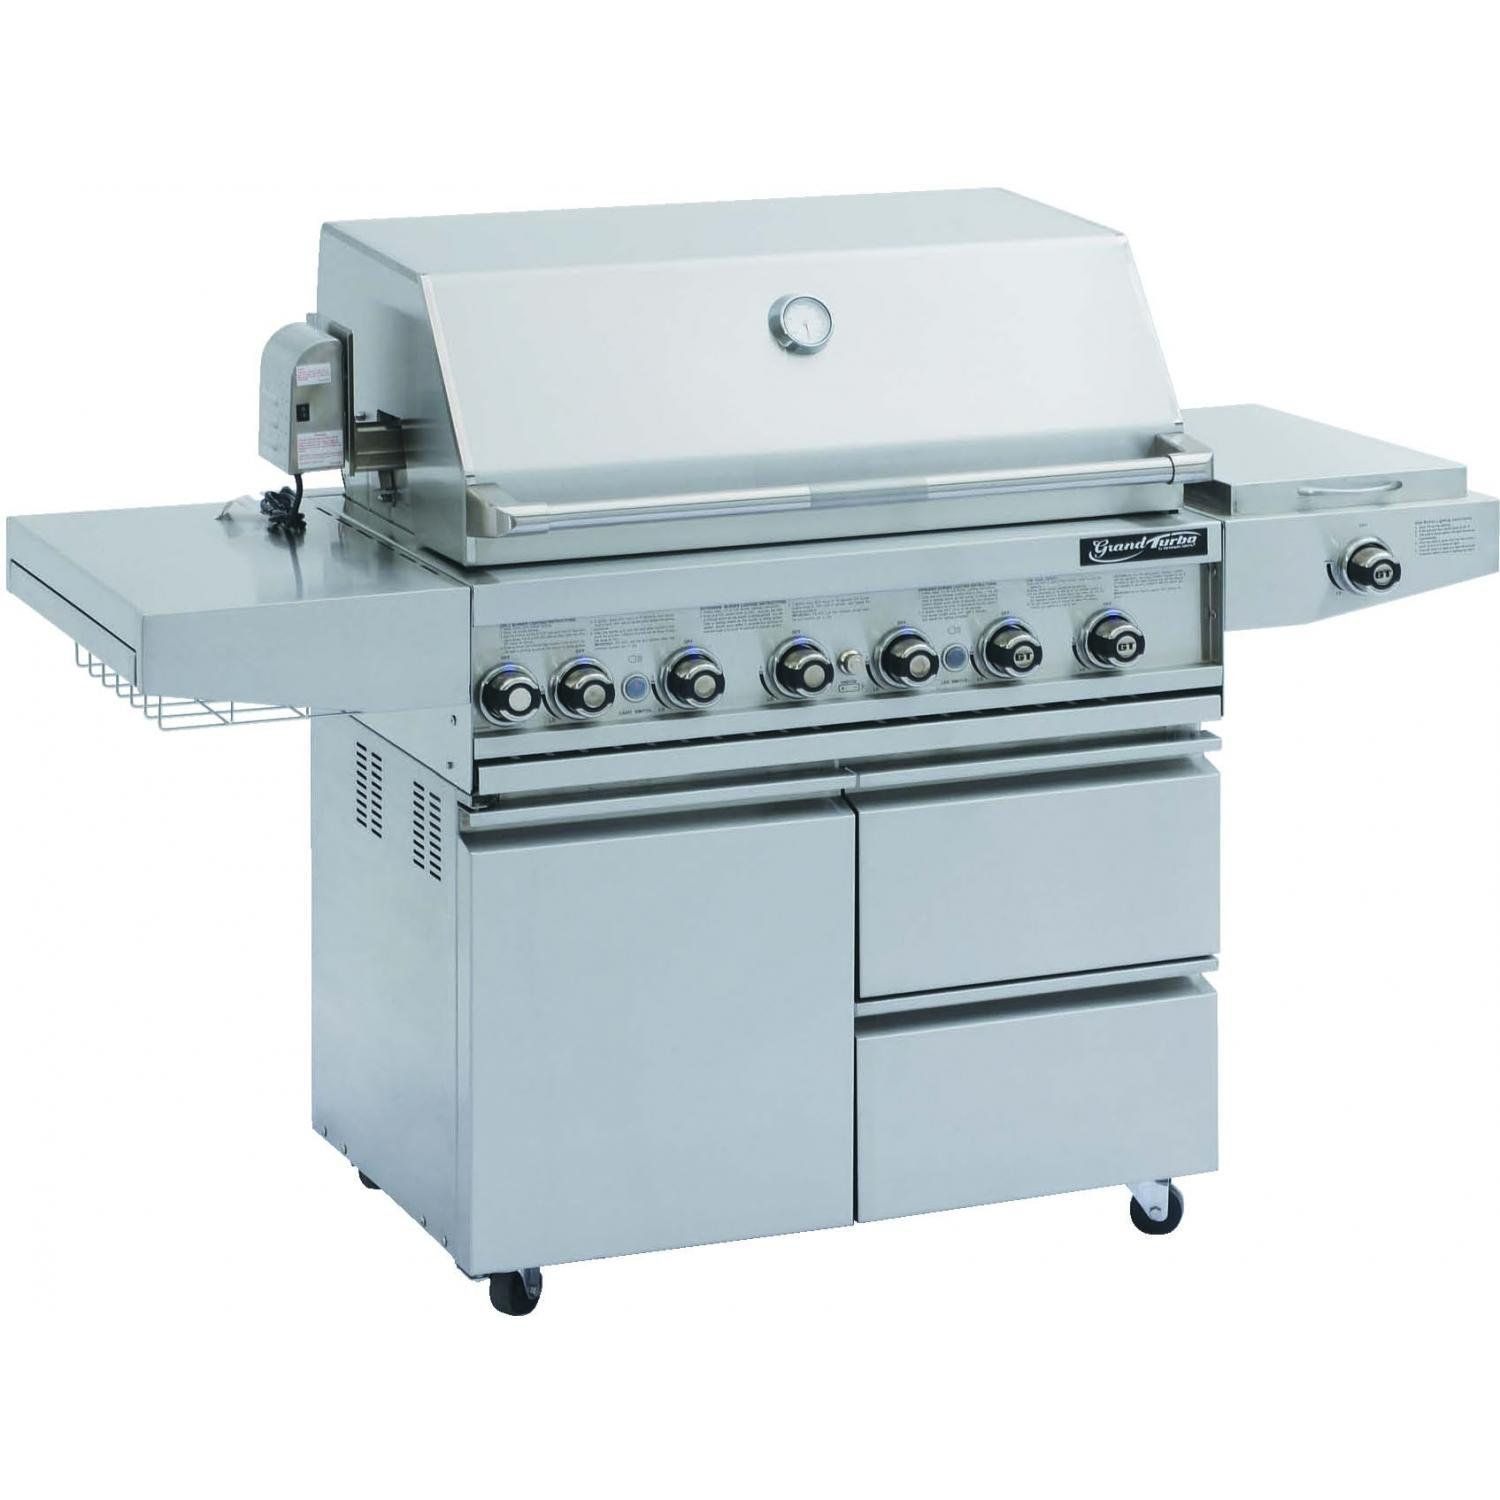 Grand Turbo By Barbeques Galore 38 inch Propane Gas Grill Cart